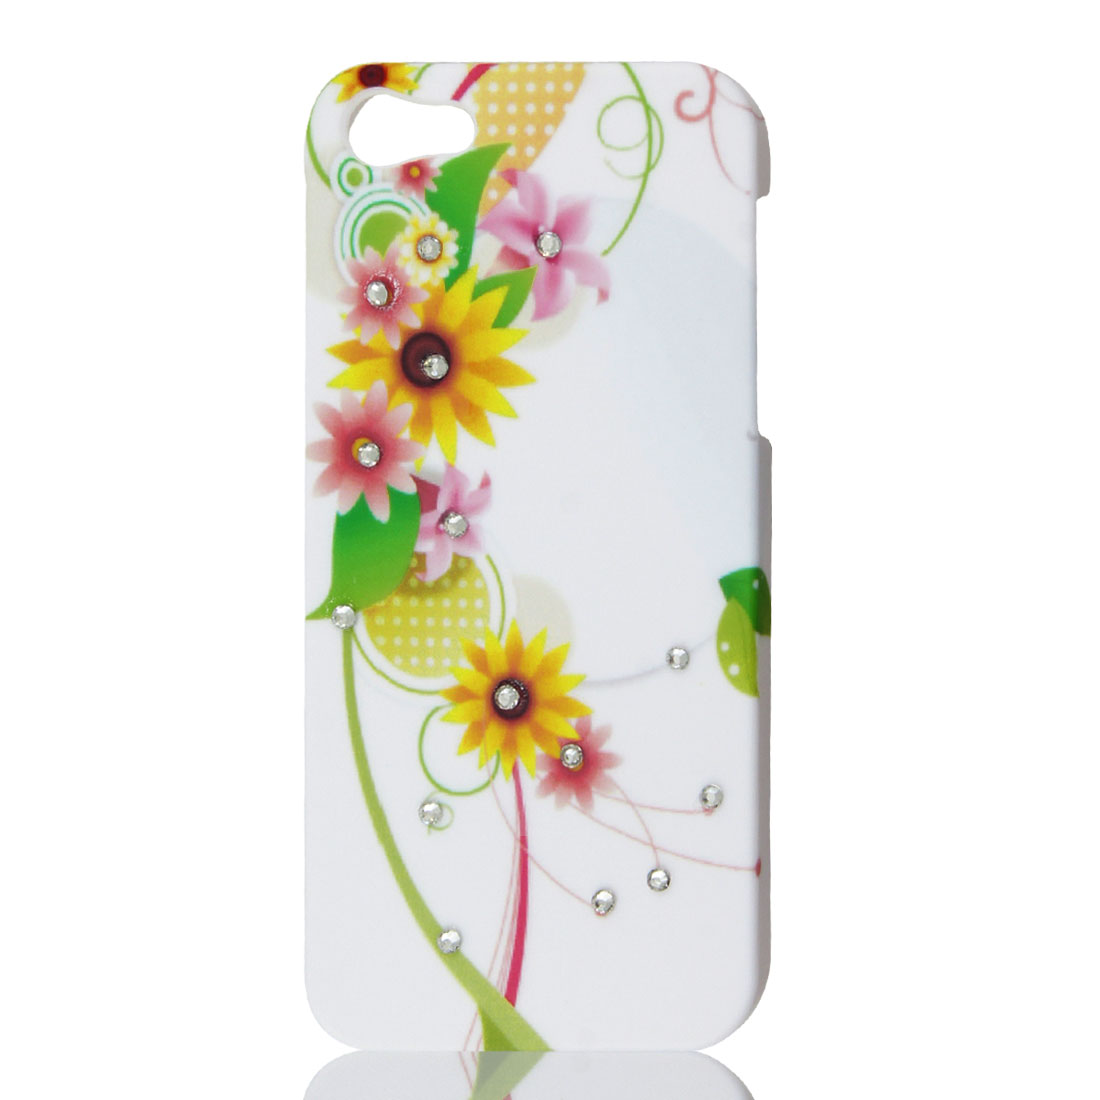 Shiny Rhinestone Sunflower Pattern Protective Hard Case Back Cover for iPhone 5G